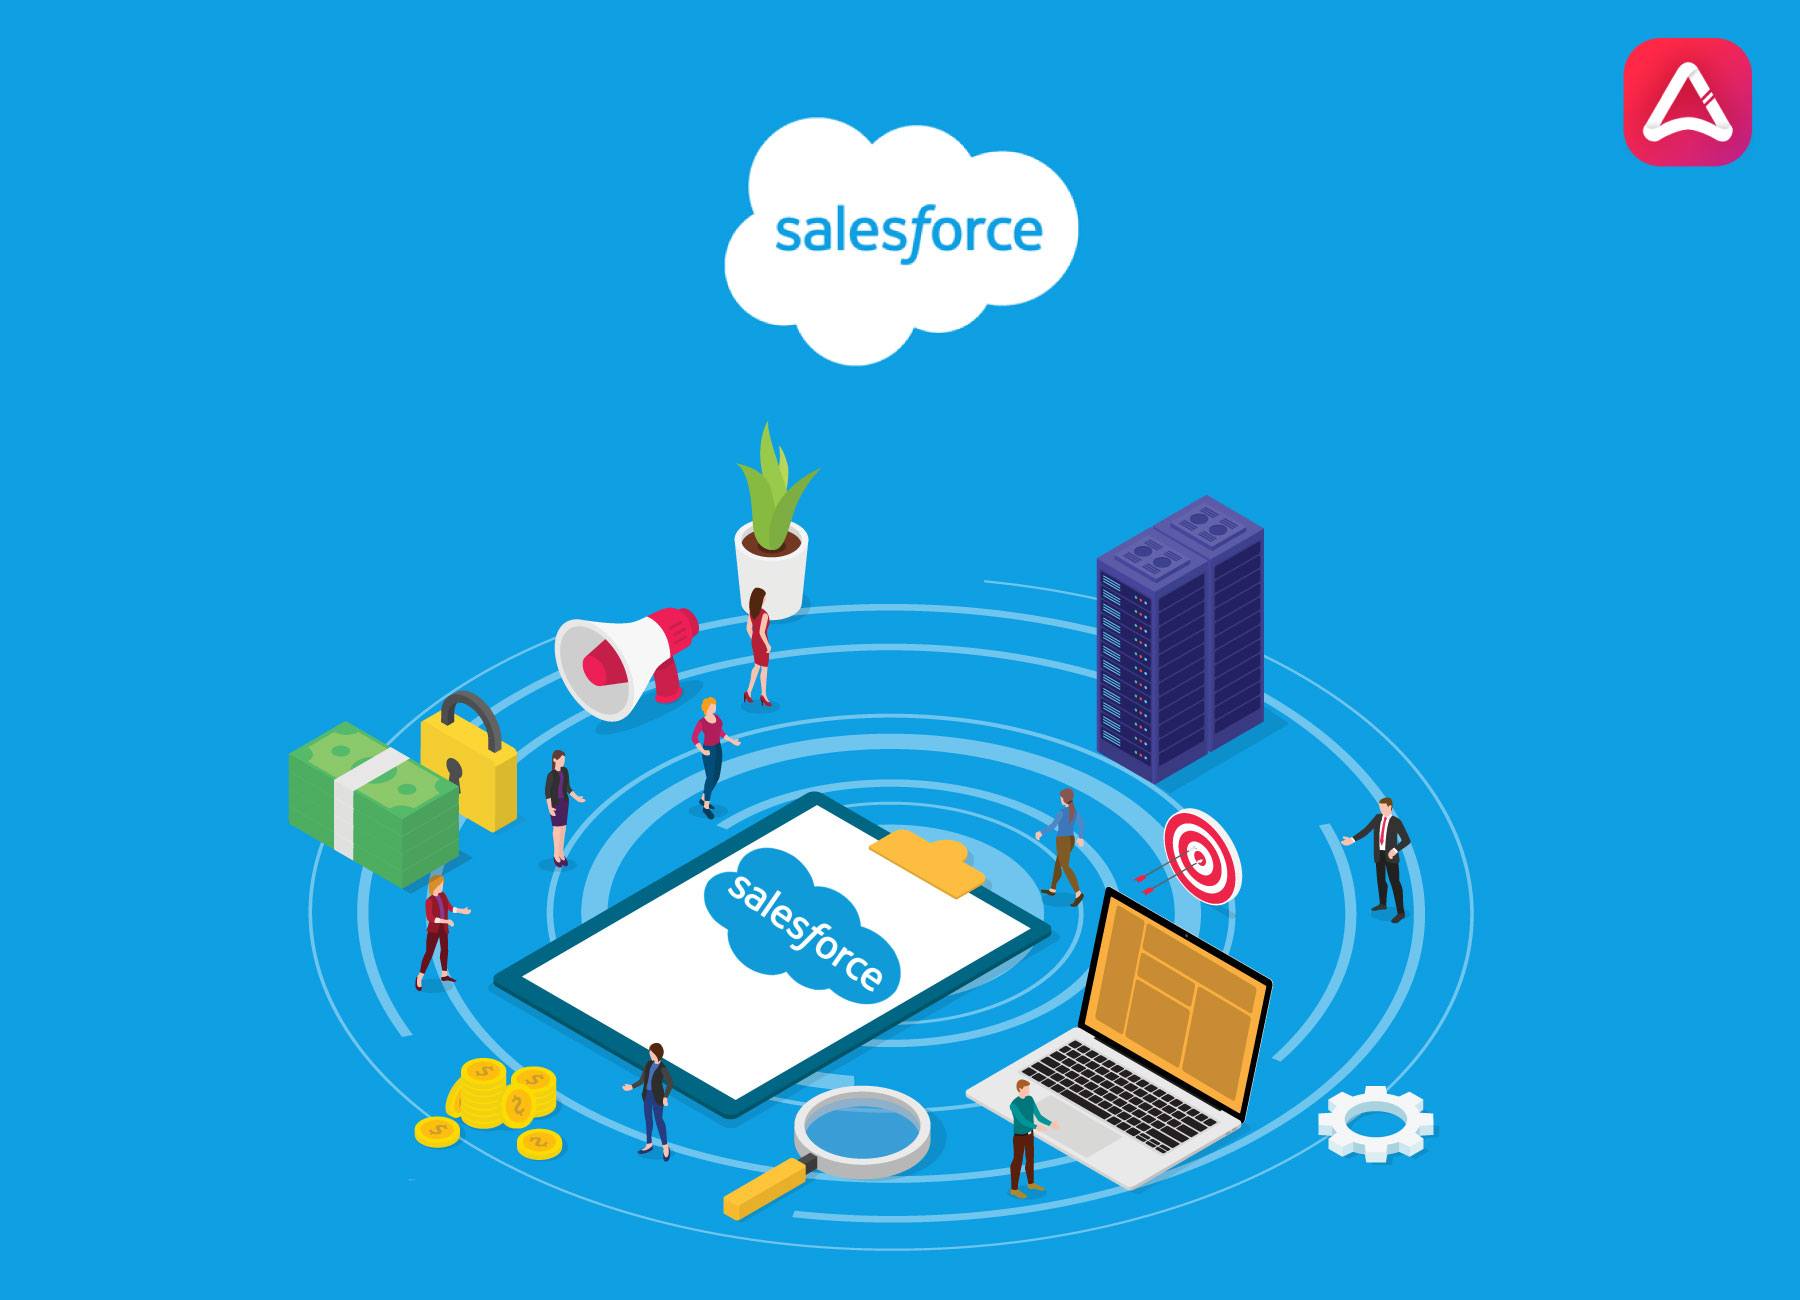 Salesforce Application